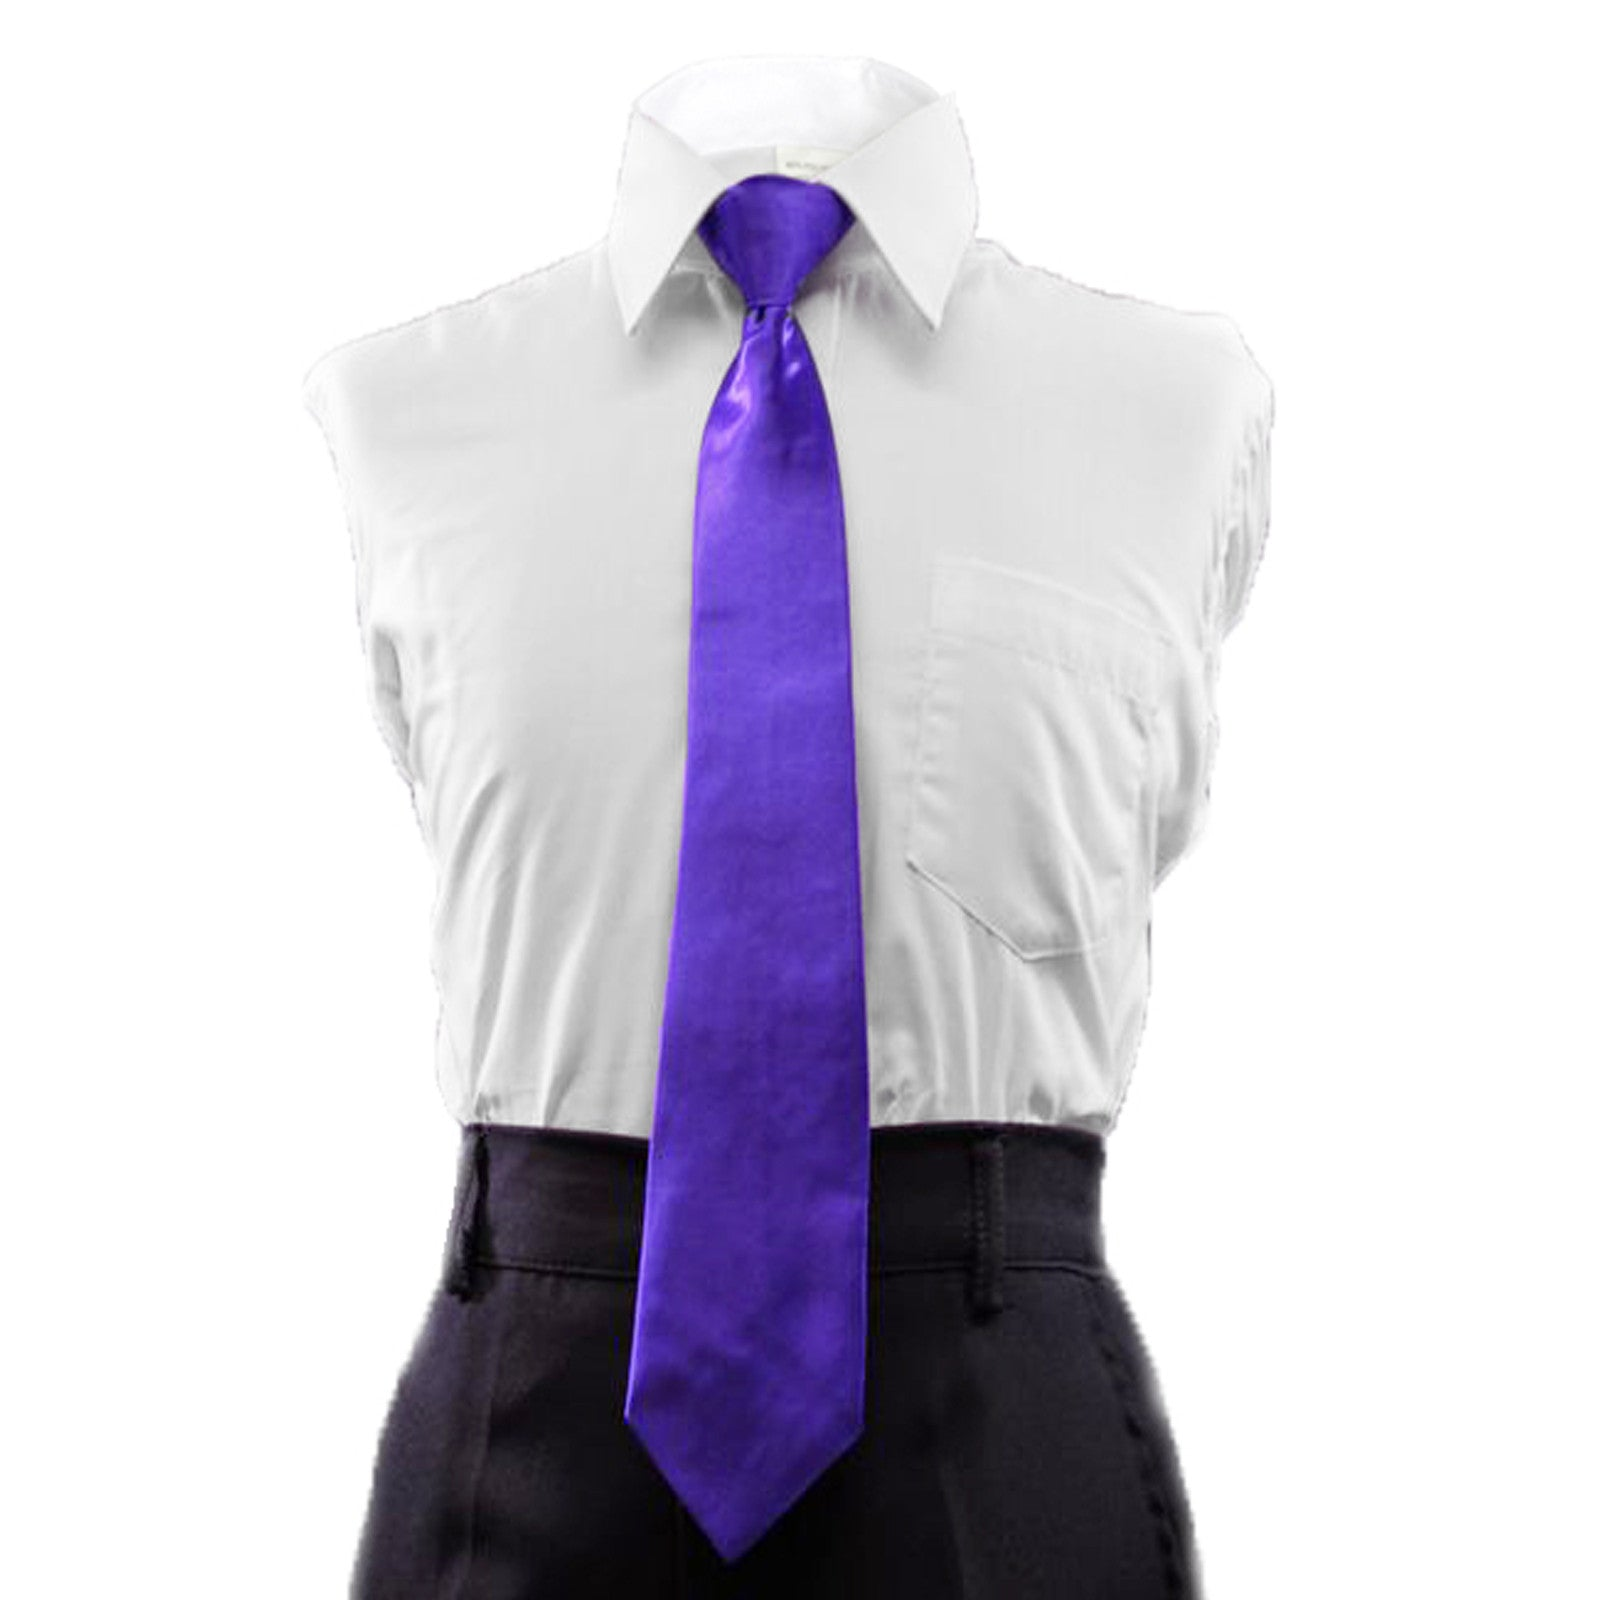 4T Unotux 6pc Boys Suit with Satin Purple Necktie from Baby to Teen